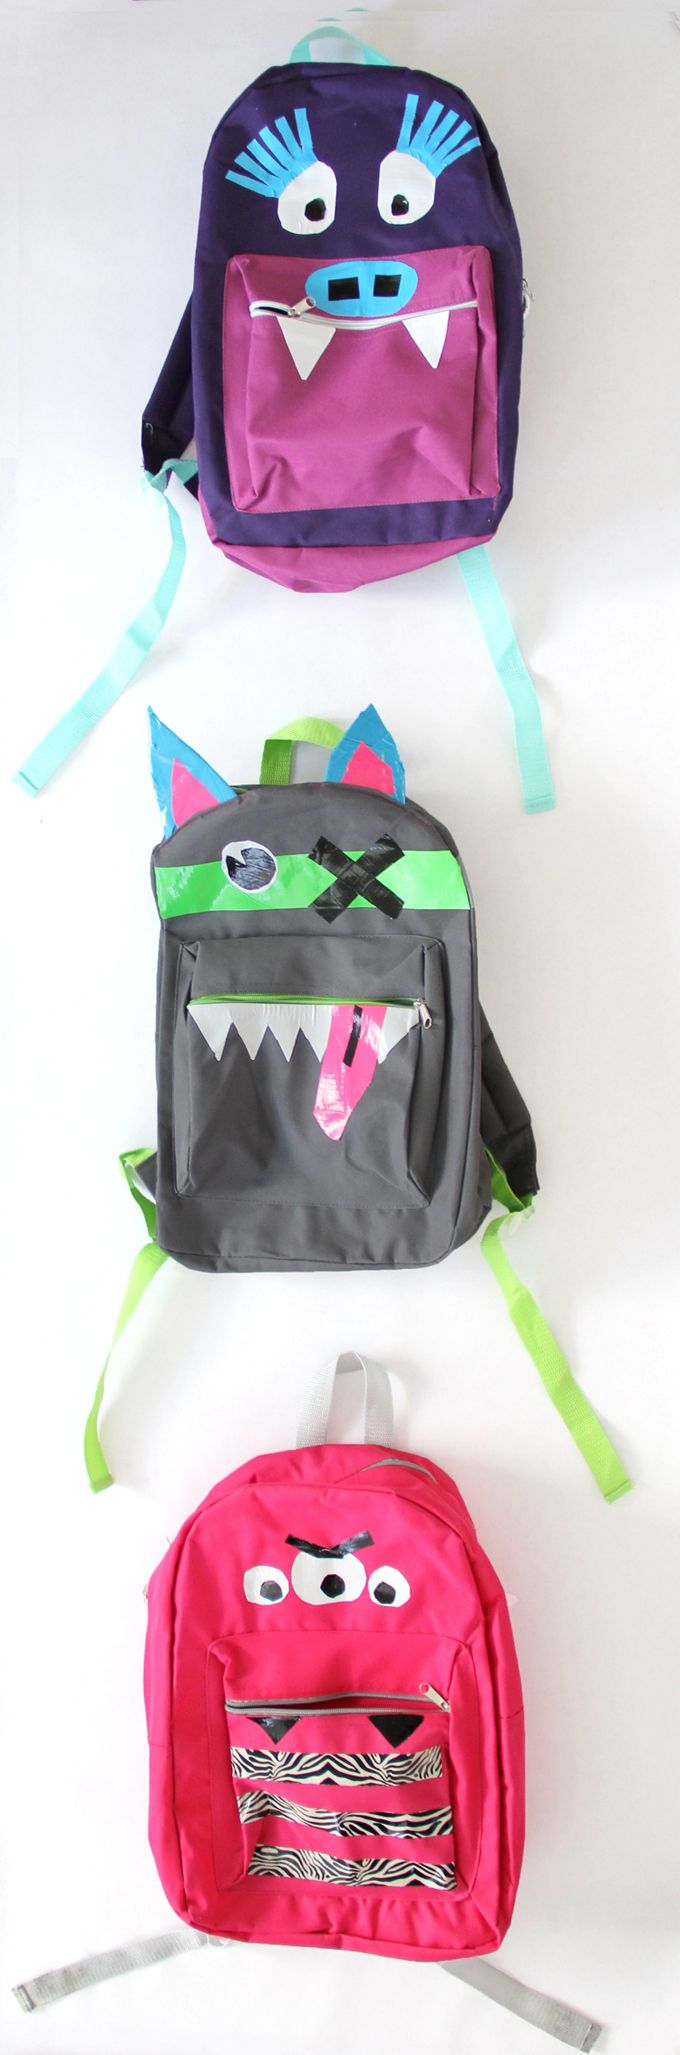 Trick out your kid's backpack with Duct tape and scissors! Duck Tape Monster Backpack Craft DIY From Joann Fabrics